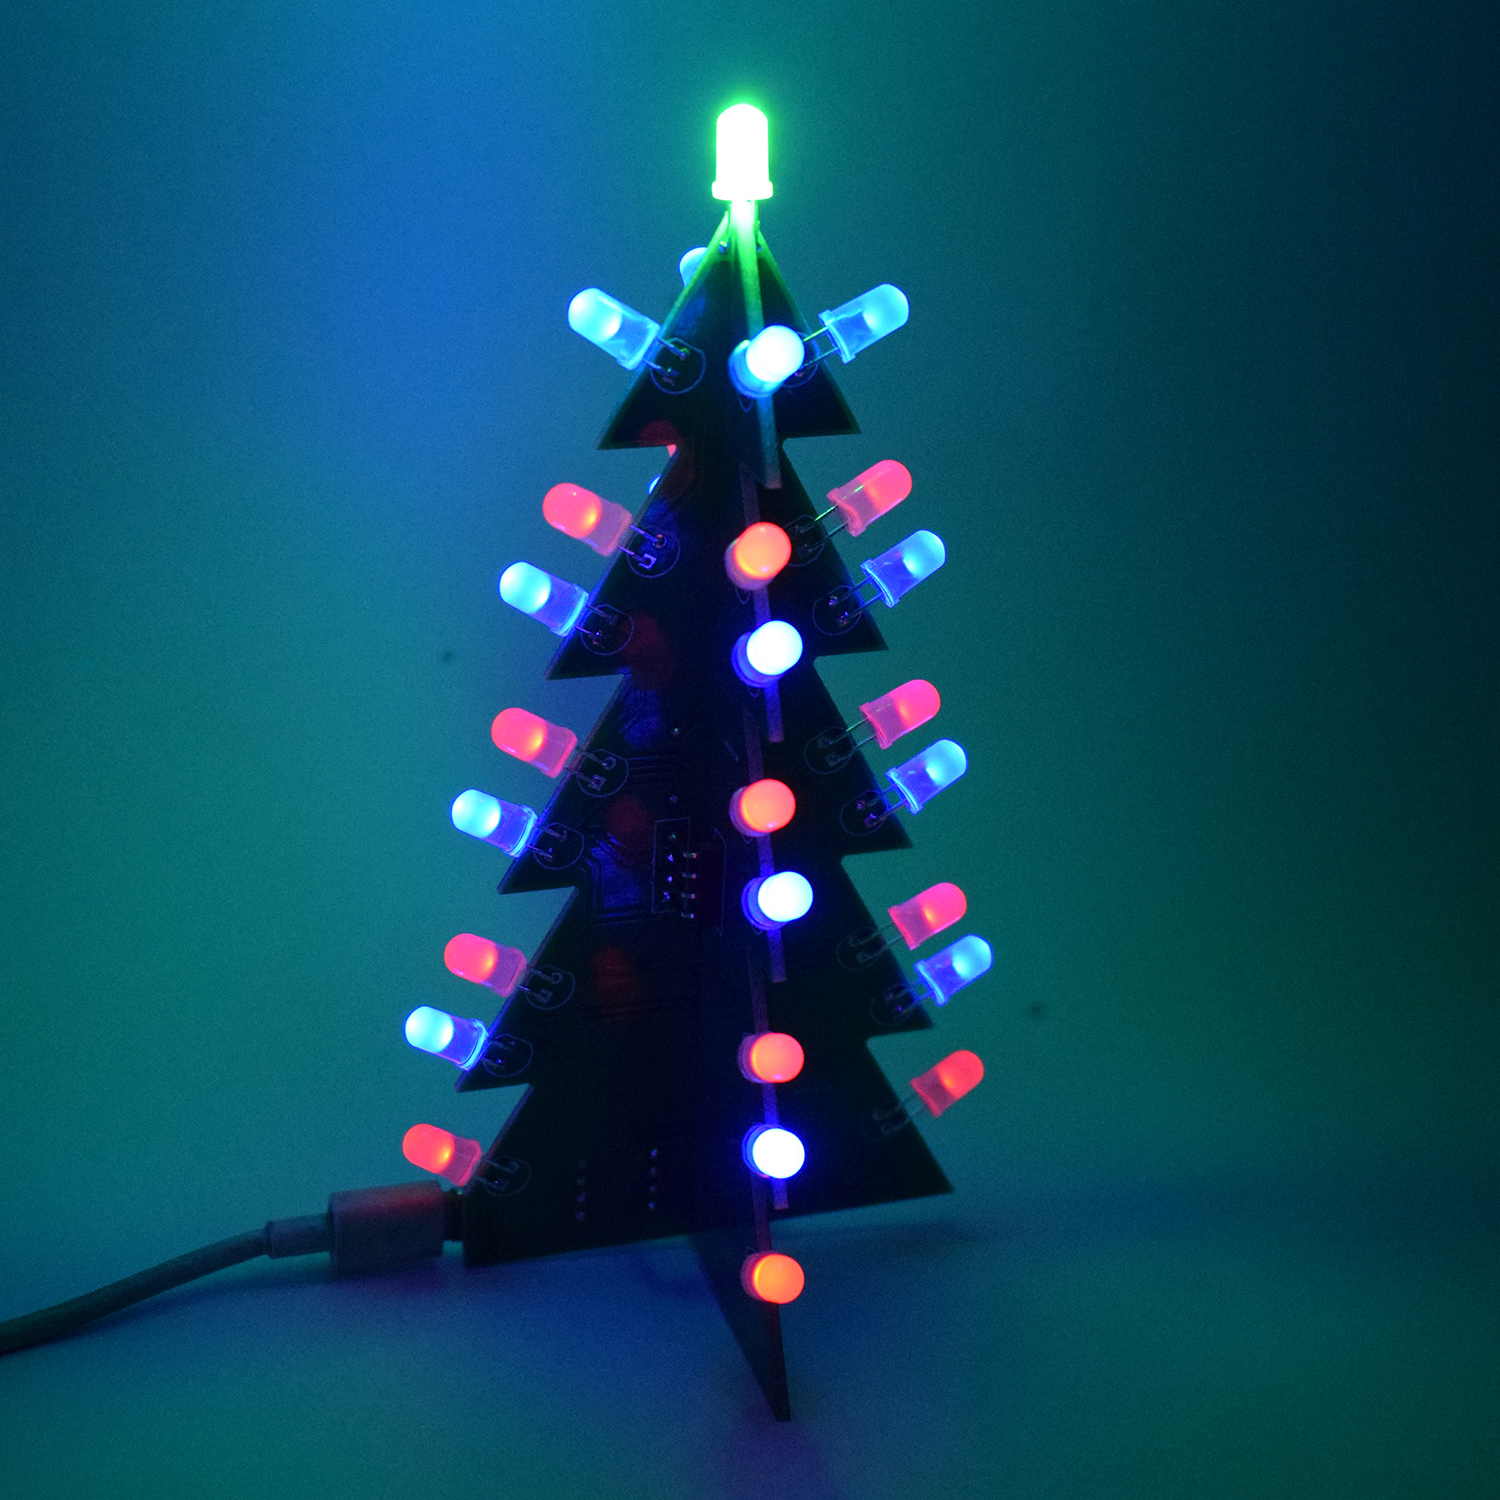 Geekcreit DIY Star Effect 3D LED Decorative Christmas Tree Kit Sale